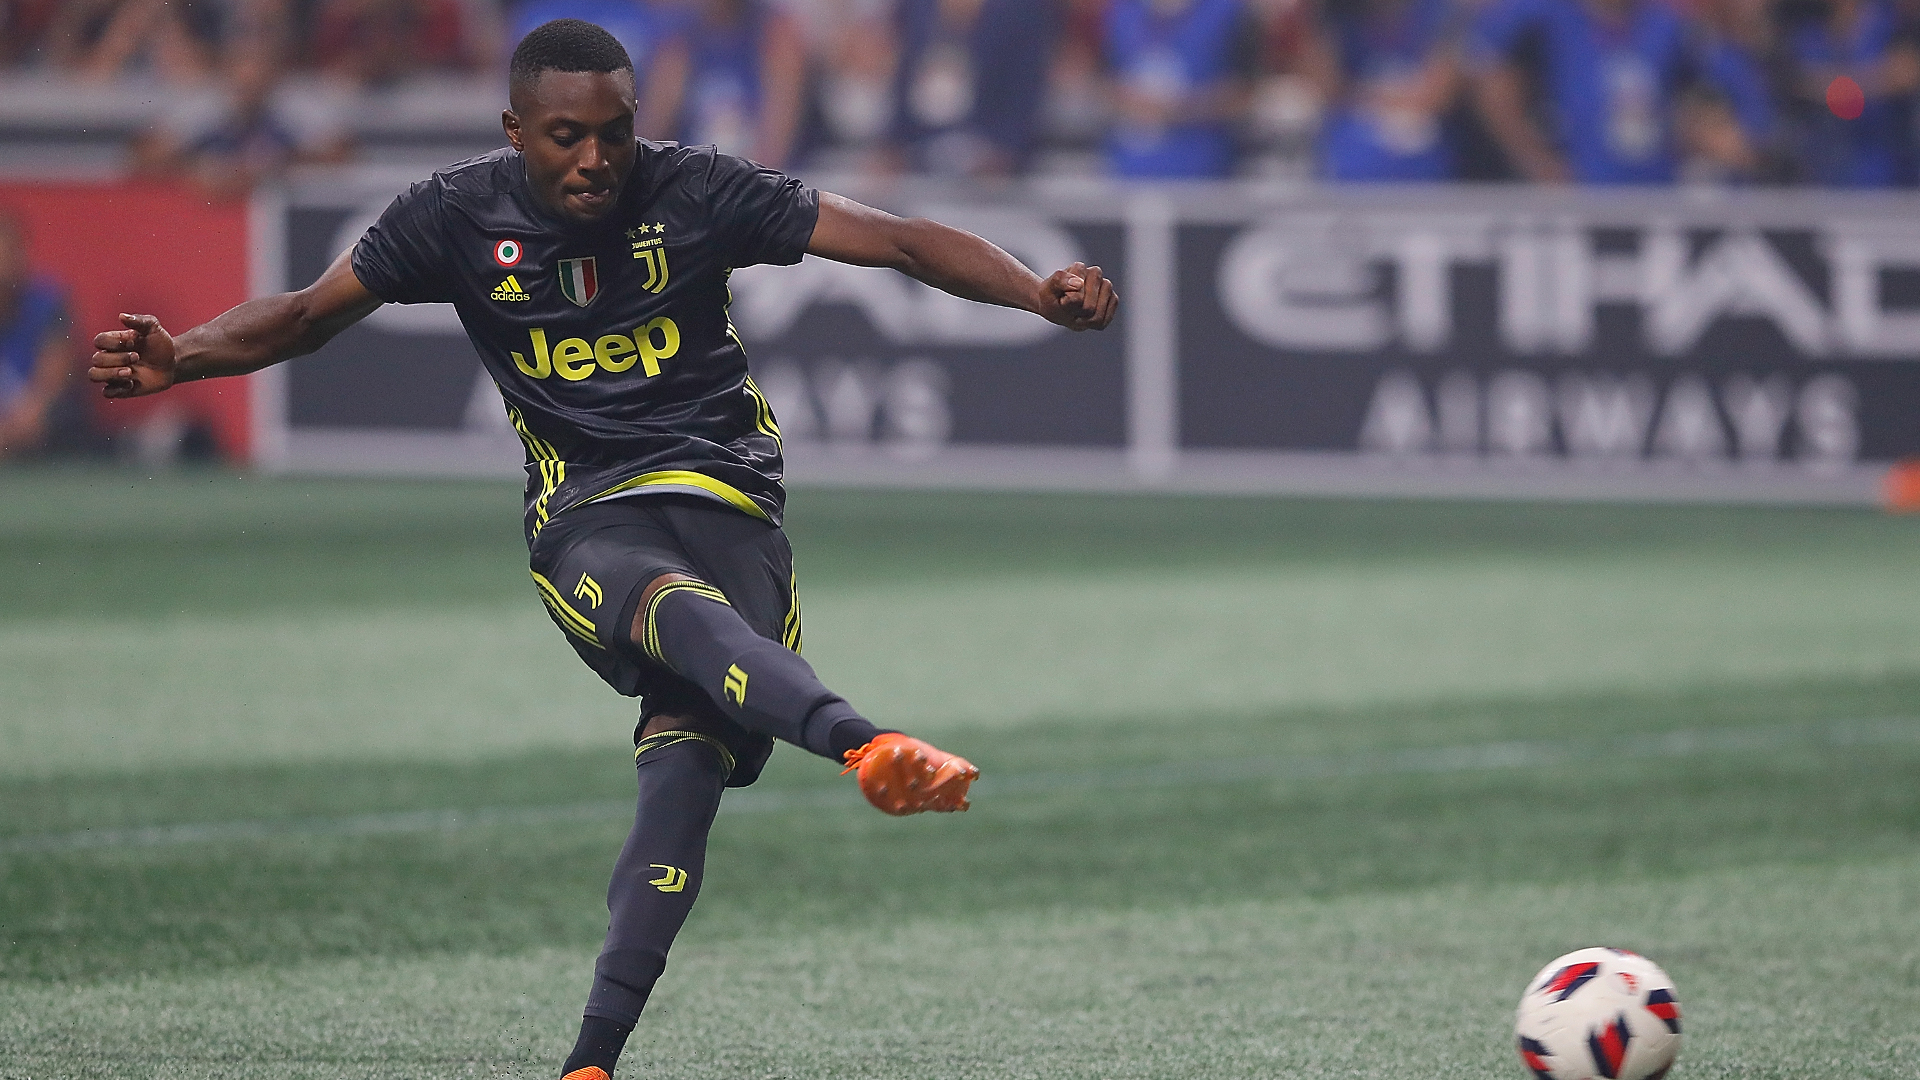 Cristiano Ronaldo: Juventus star Blaise Matuidi makes prediction involving new team-mate